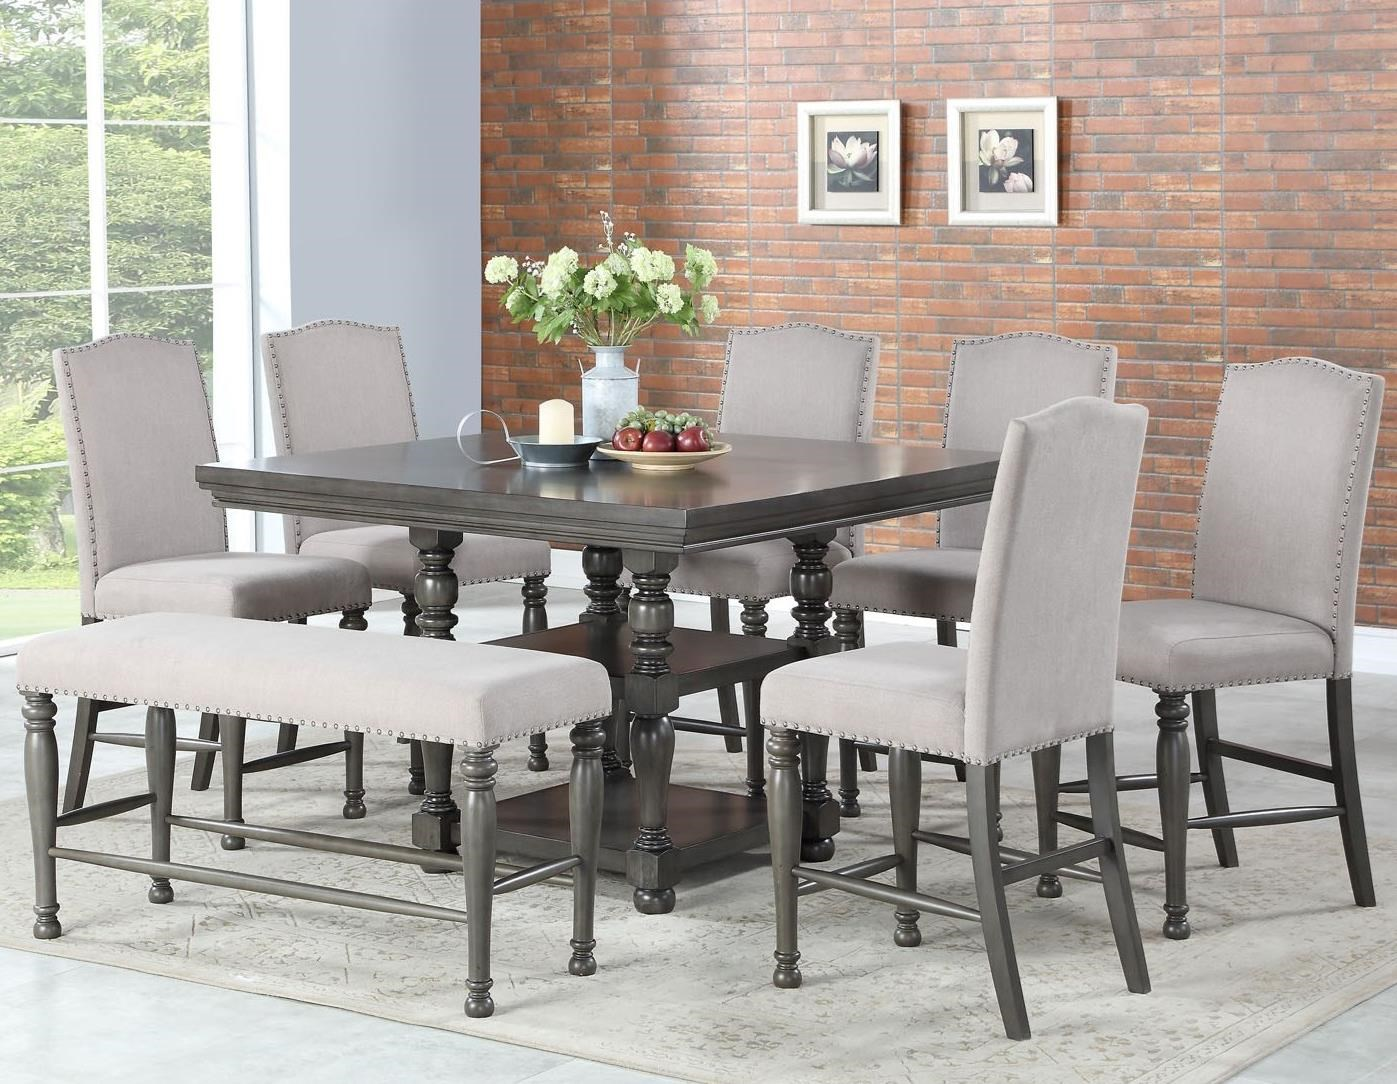 Caswell 8 Pc Counter Dining Set w/ Bench by Steve Silver at Nassau Furniture and Mattress